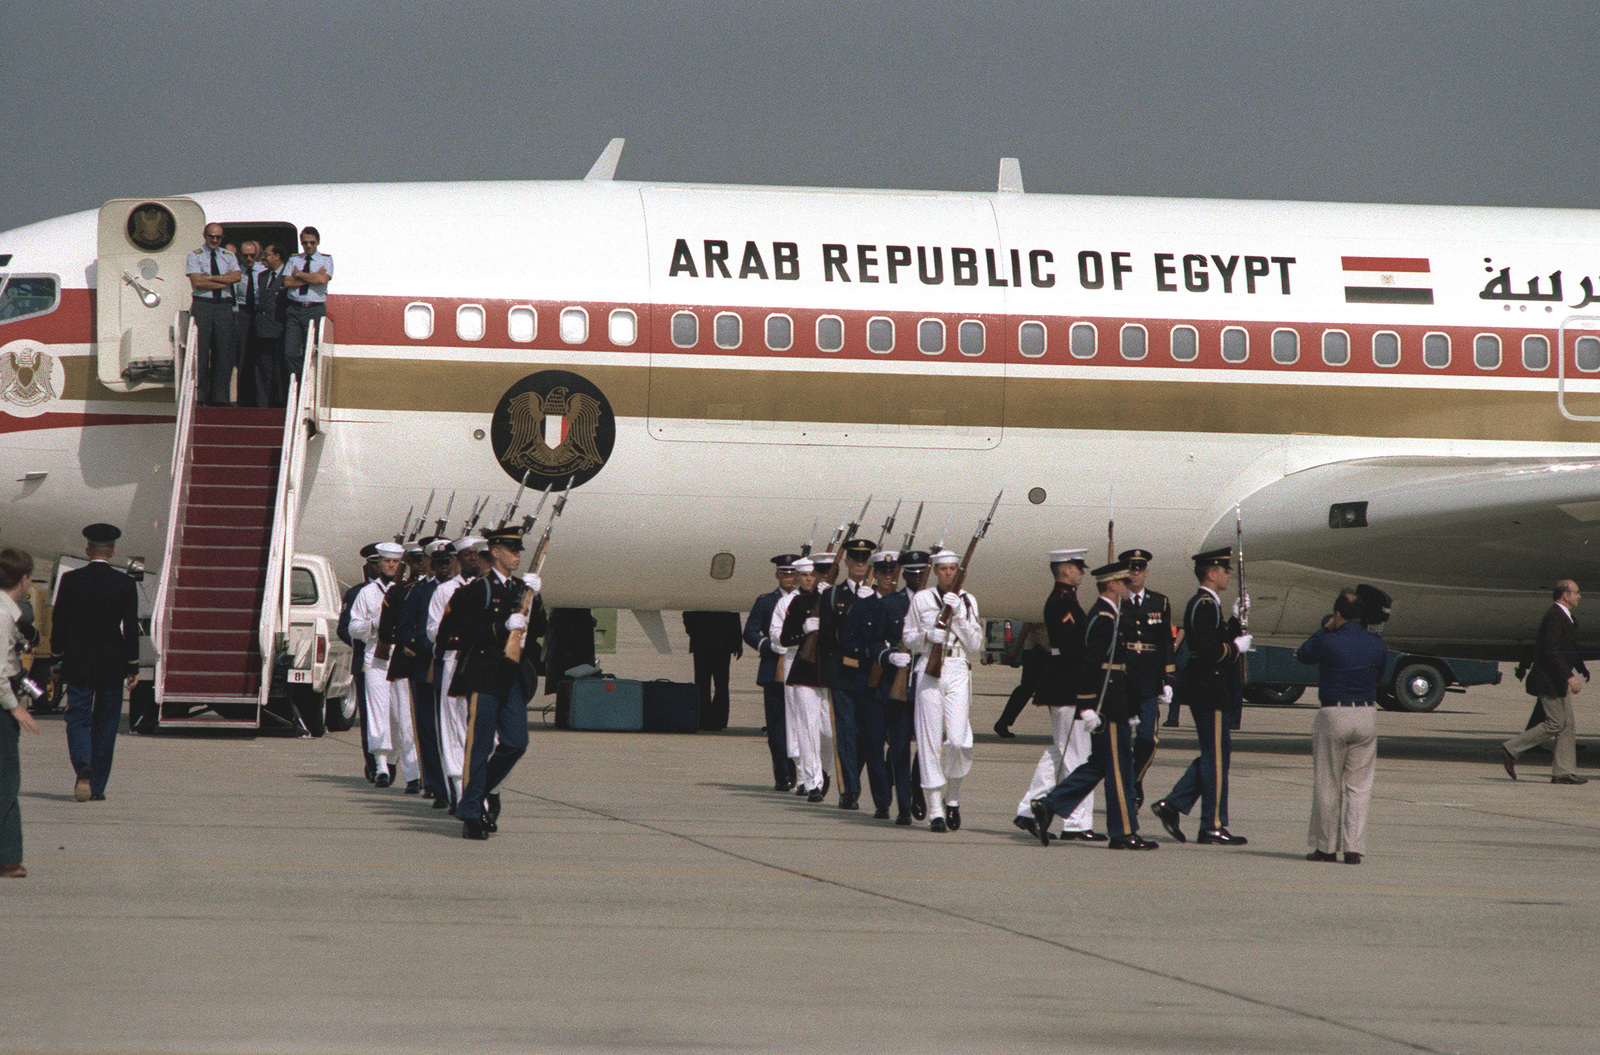 The honor guard moves into position prior to departure ceremonies for Egyptian Vice President Hosni Mubarak after his visit to the United States